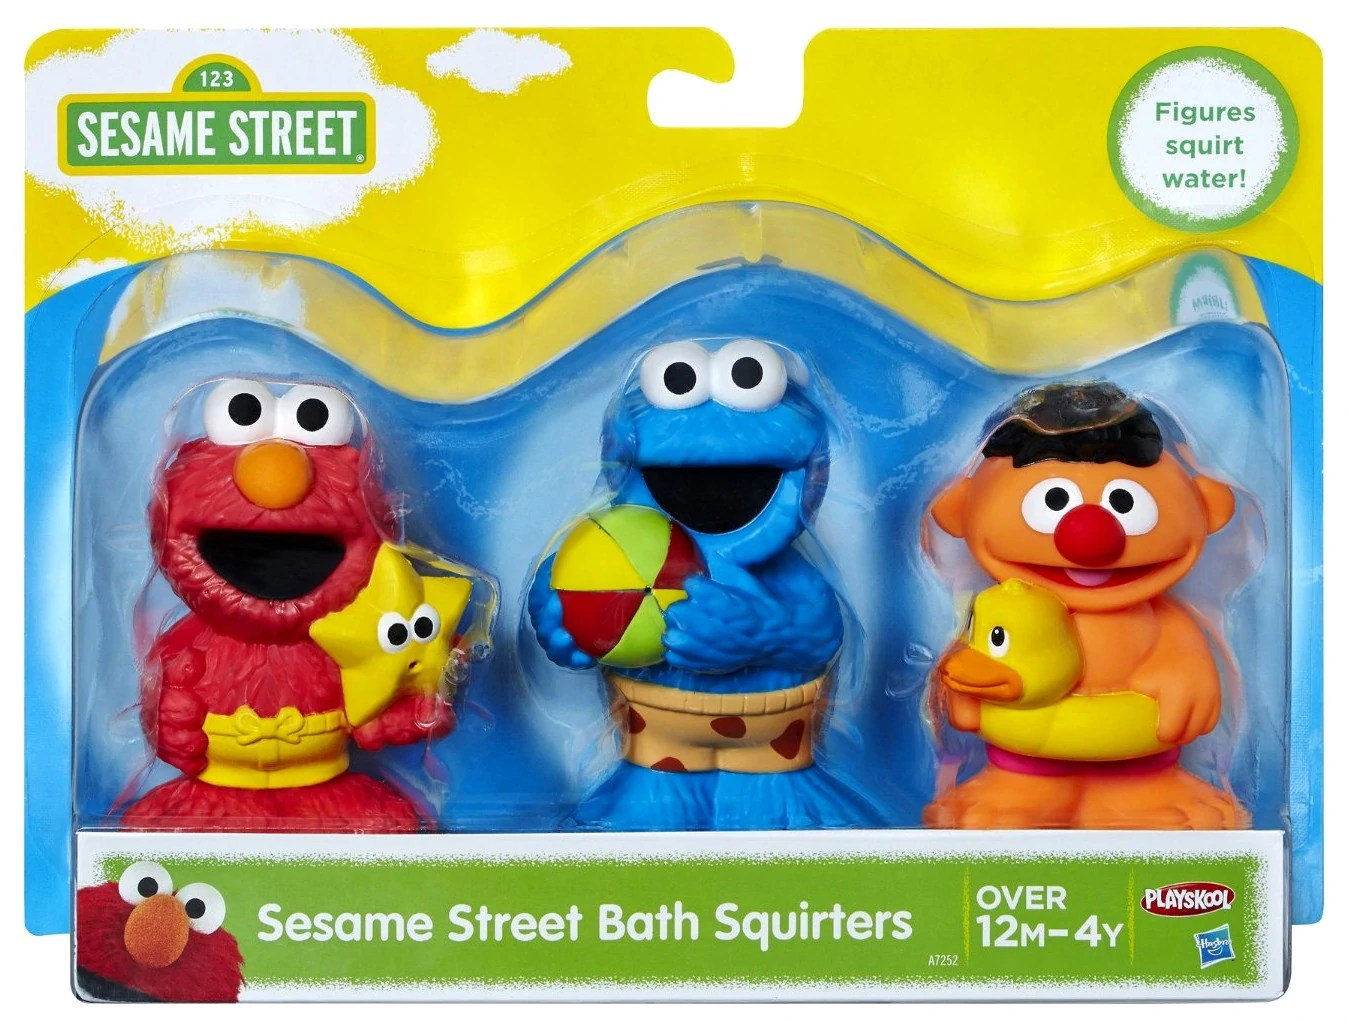 1998 Sesame Street Bath Toys - Year of Clean Water